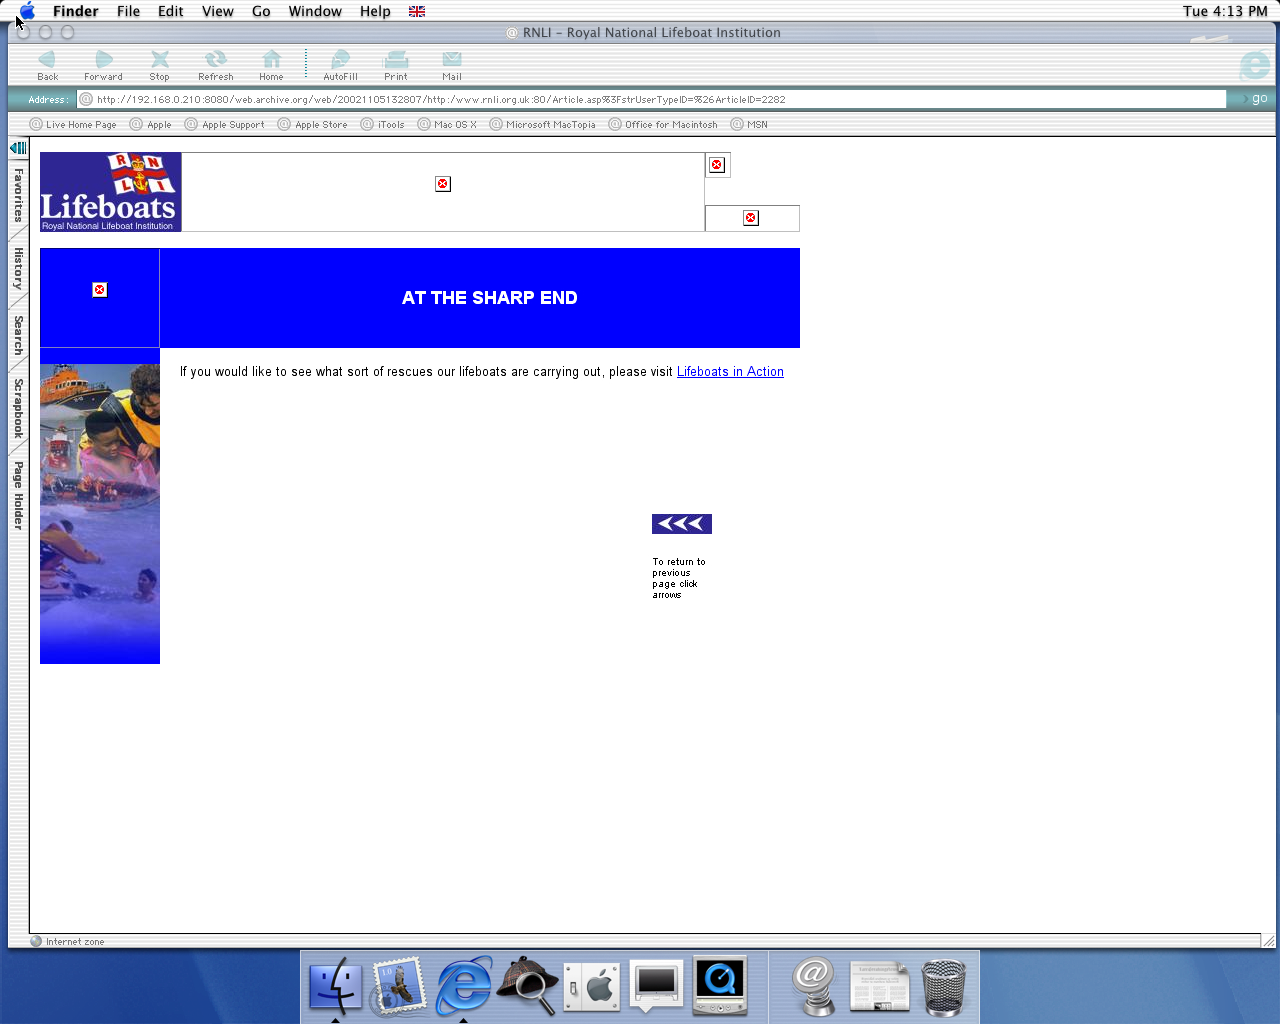 OS X 10.0 PPC with Microsoft Internet Explorer 5.1 for Mac Preview displaying a page from RNLI archived at November 05, 2002 at 13:28:07